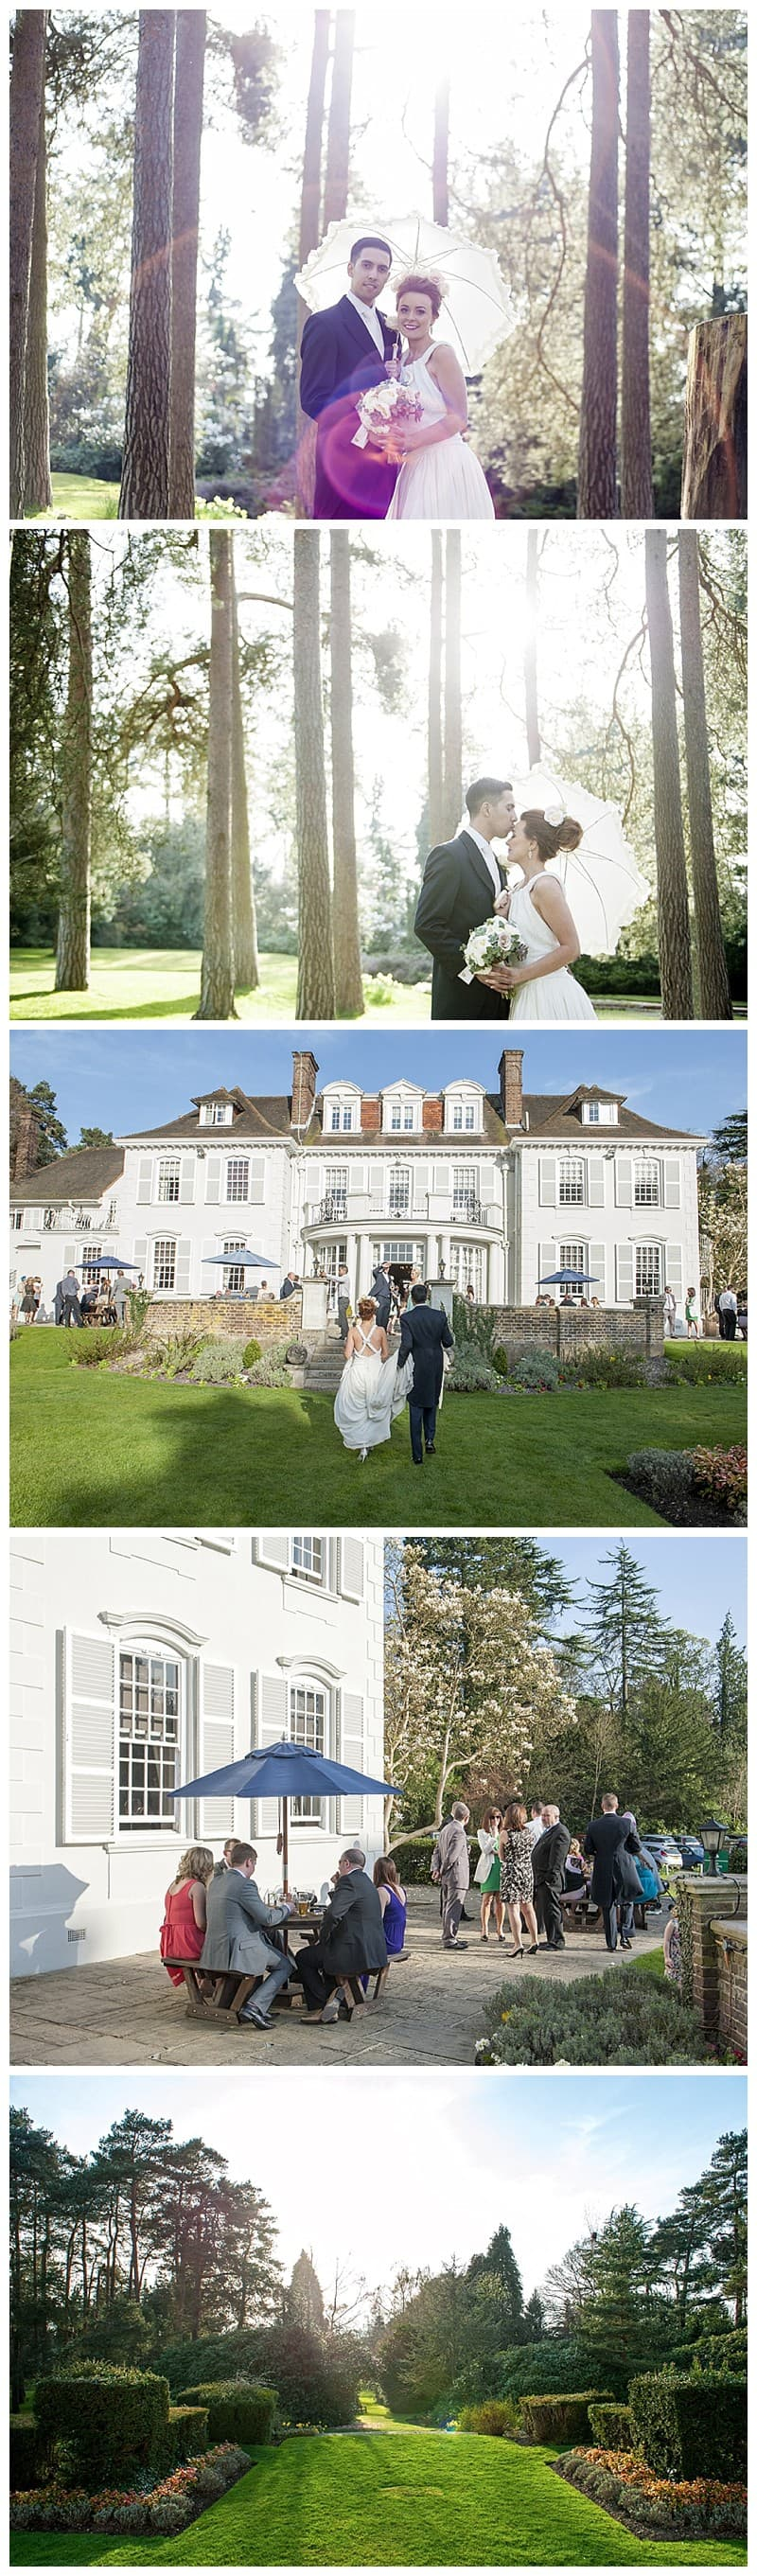 Stuart & Hayley De Vere's Hotel, Surrey Wedding, Benjamin Wetherall Photography | London Wedding Photography0014.1